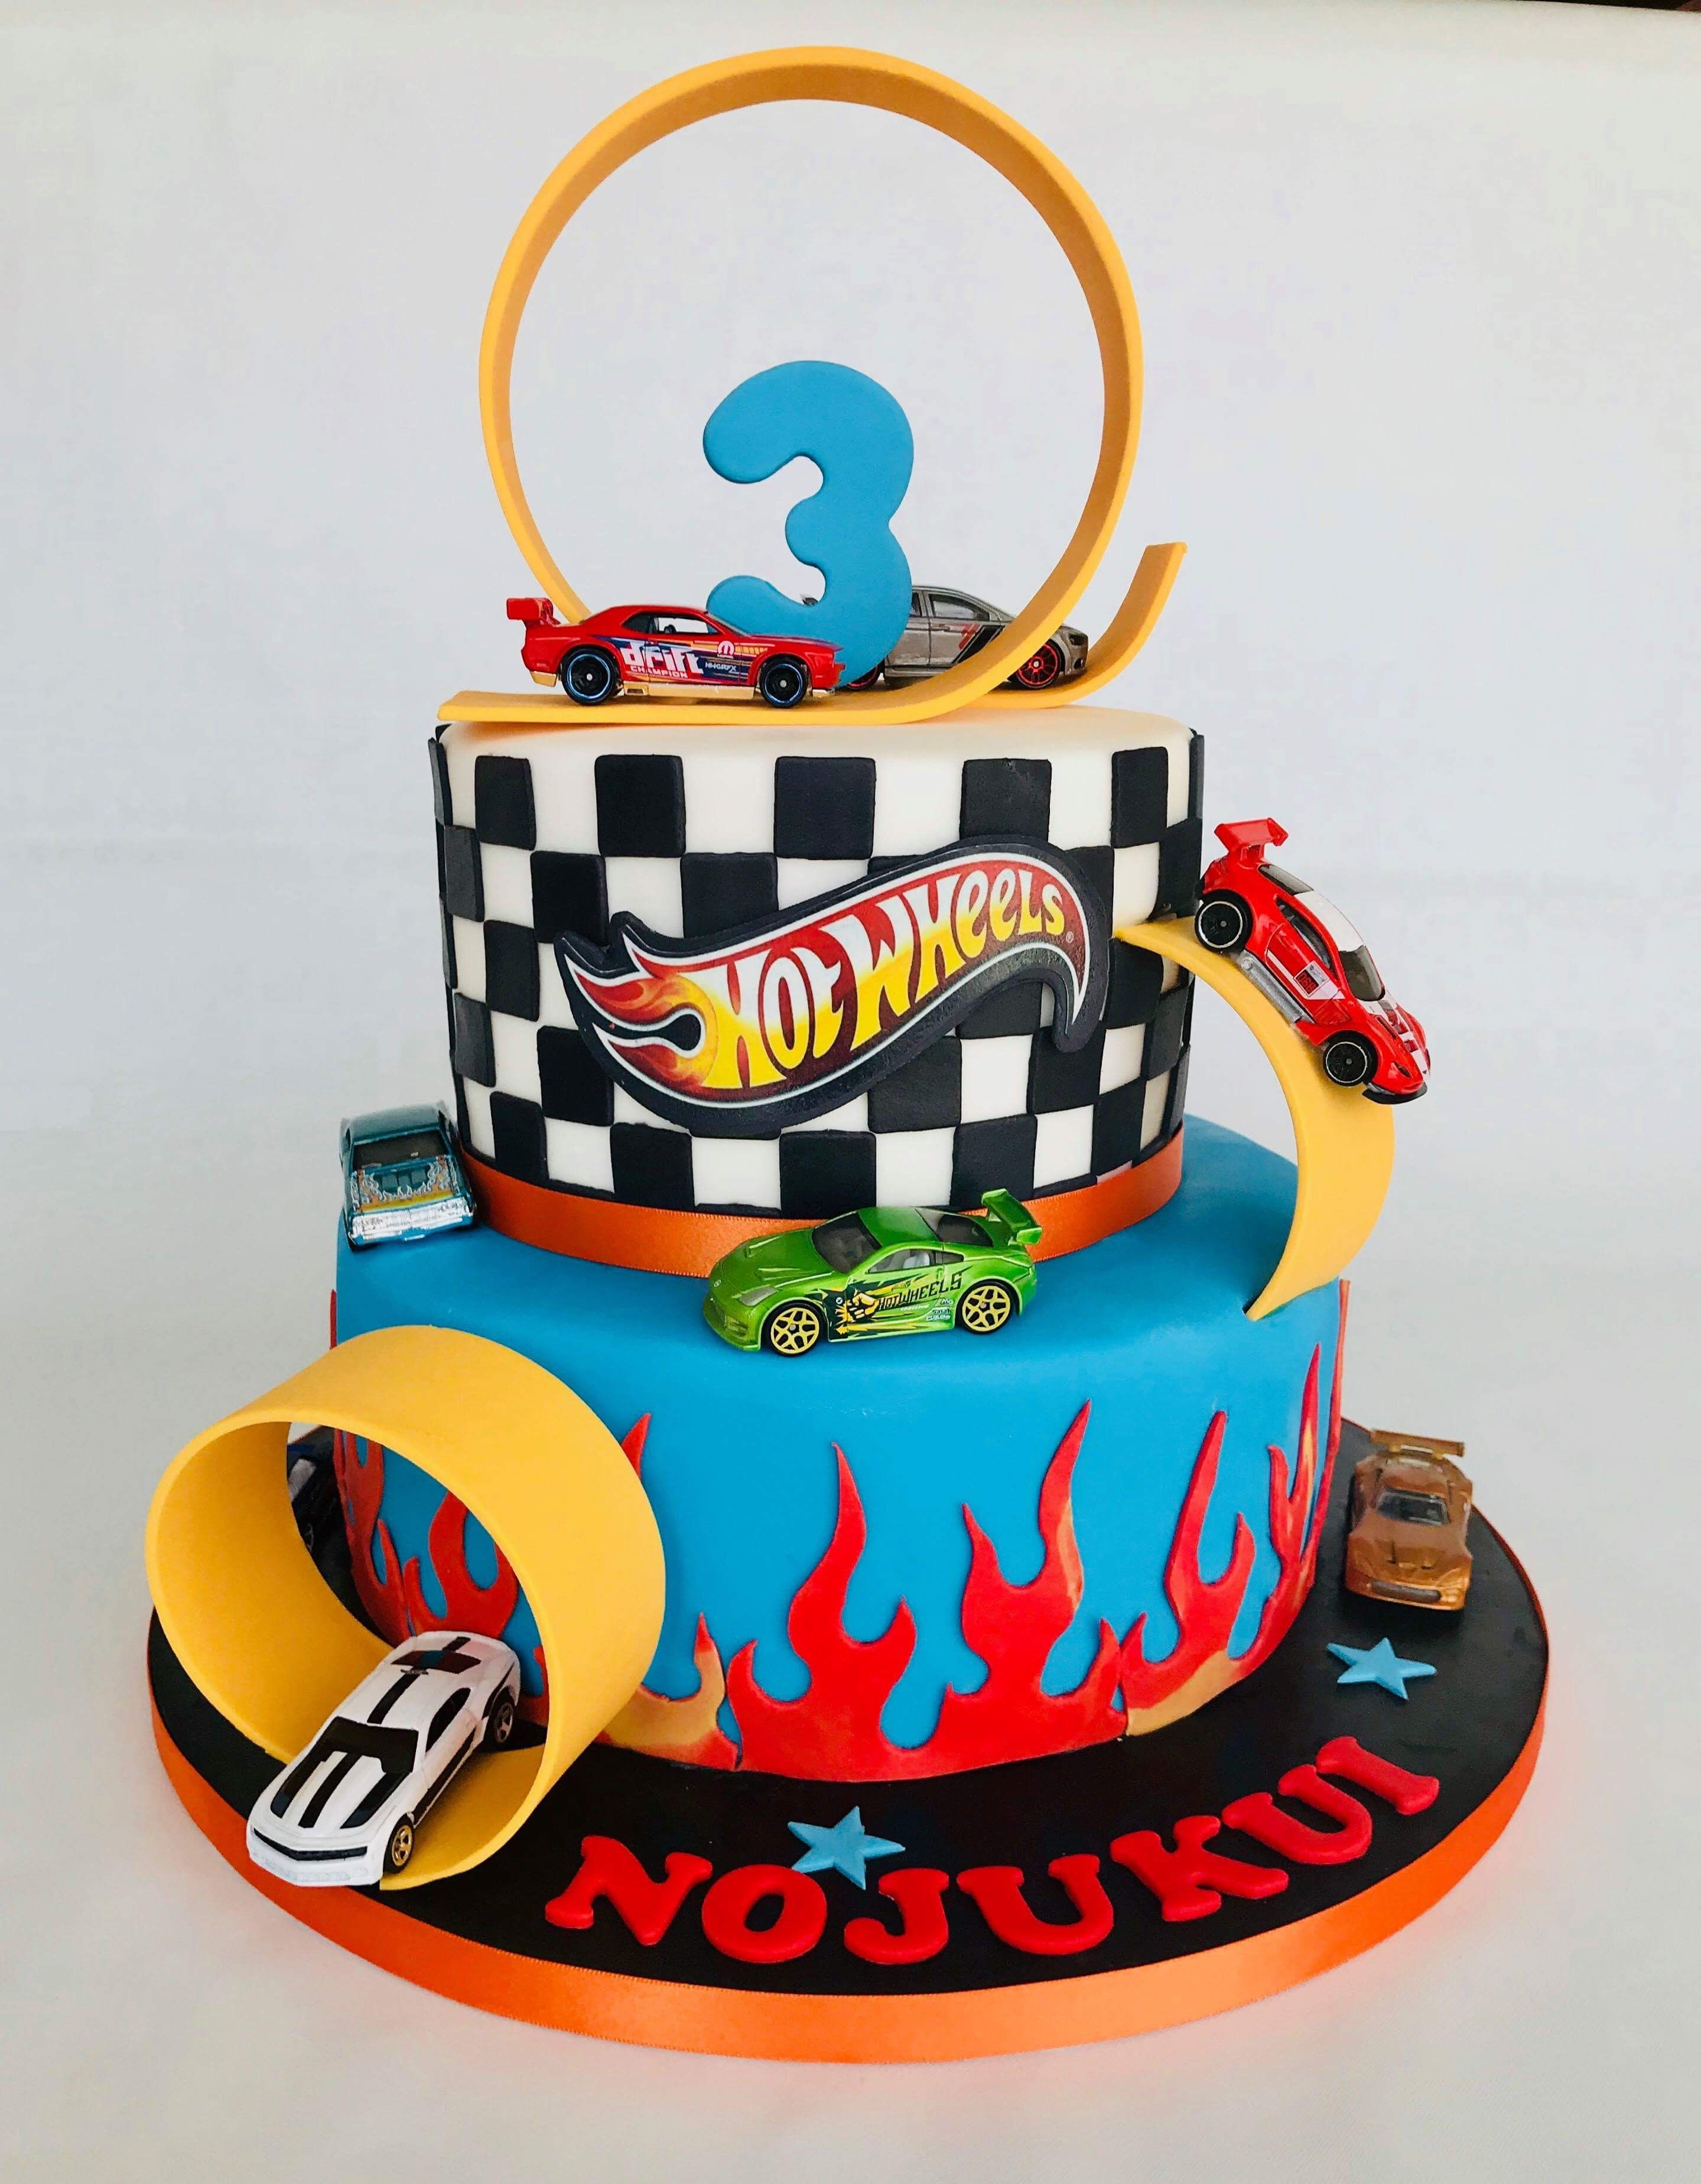 Hot Wheels Car Cake With Images Hot Wheels Birthday Cake Hot